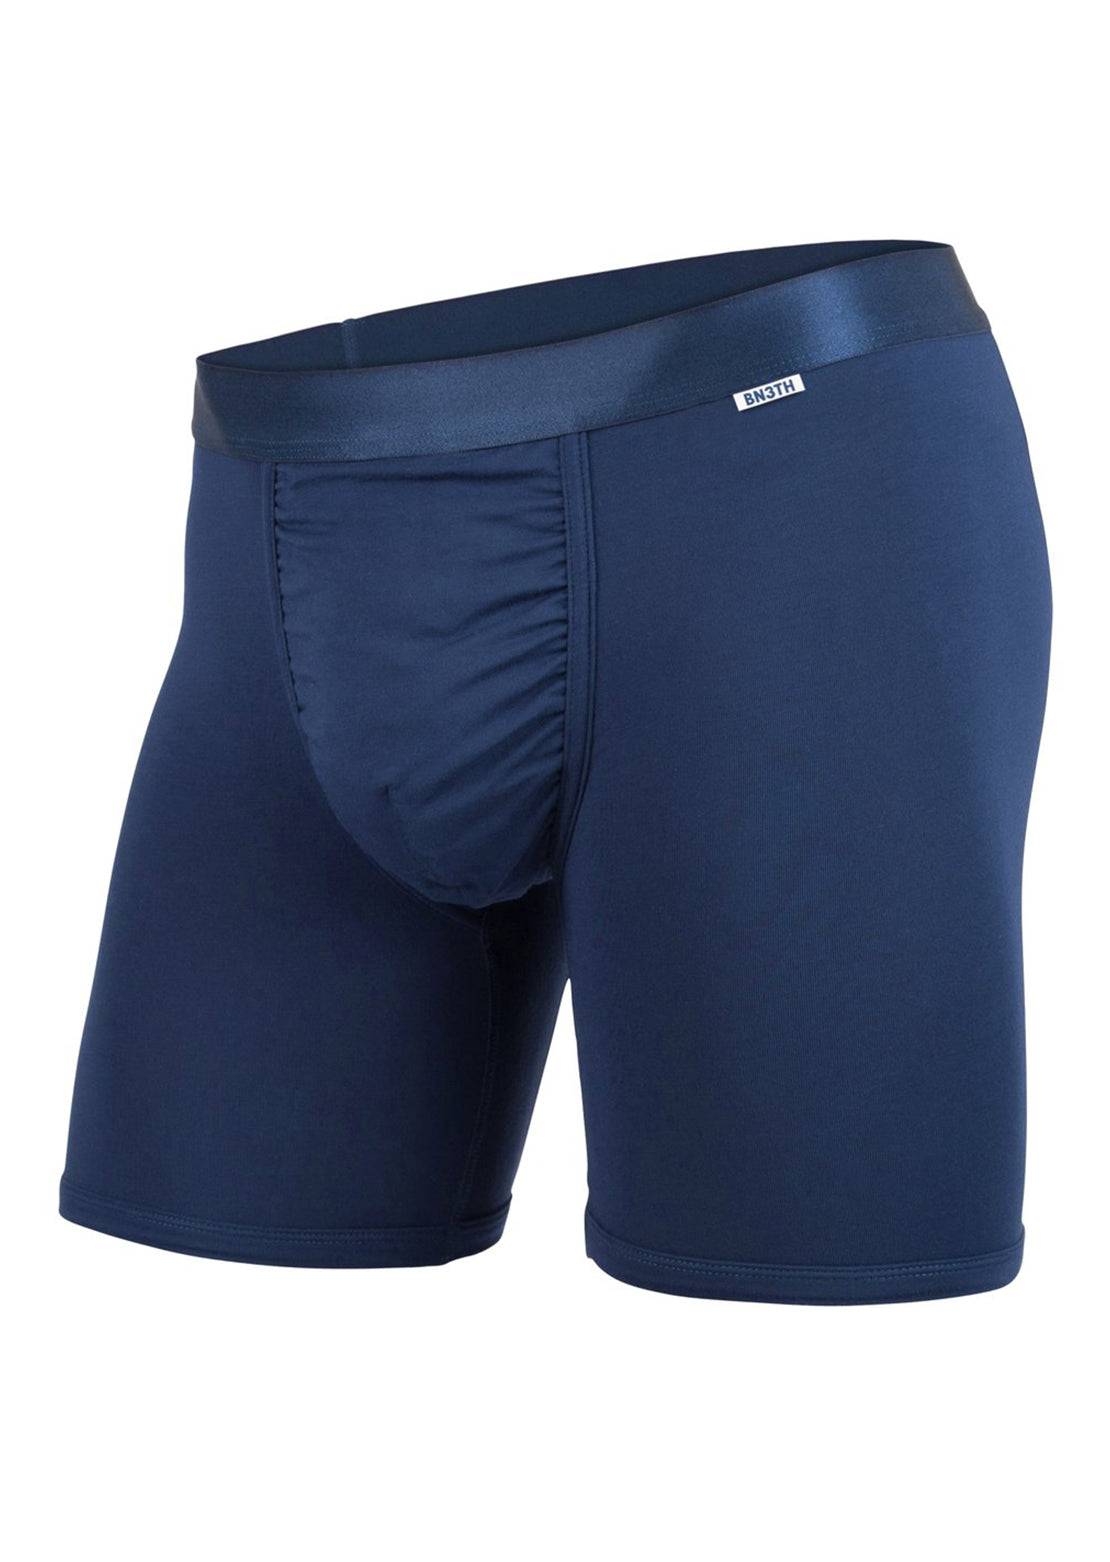 BN3TH Men's Classics Brief - Front